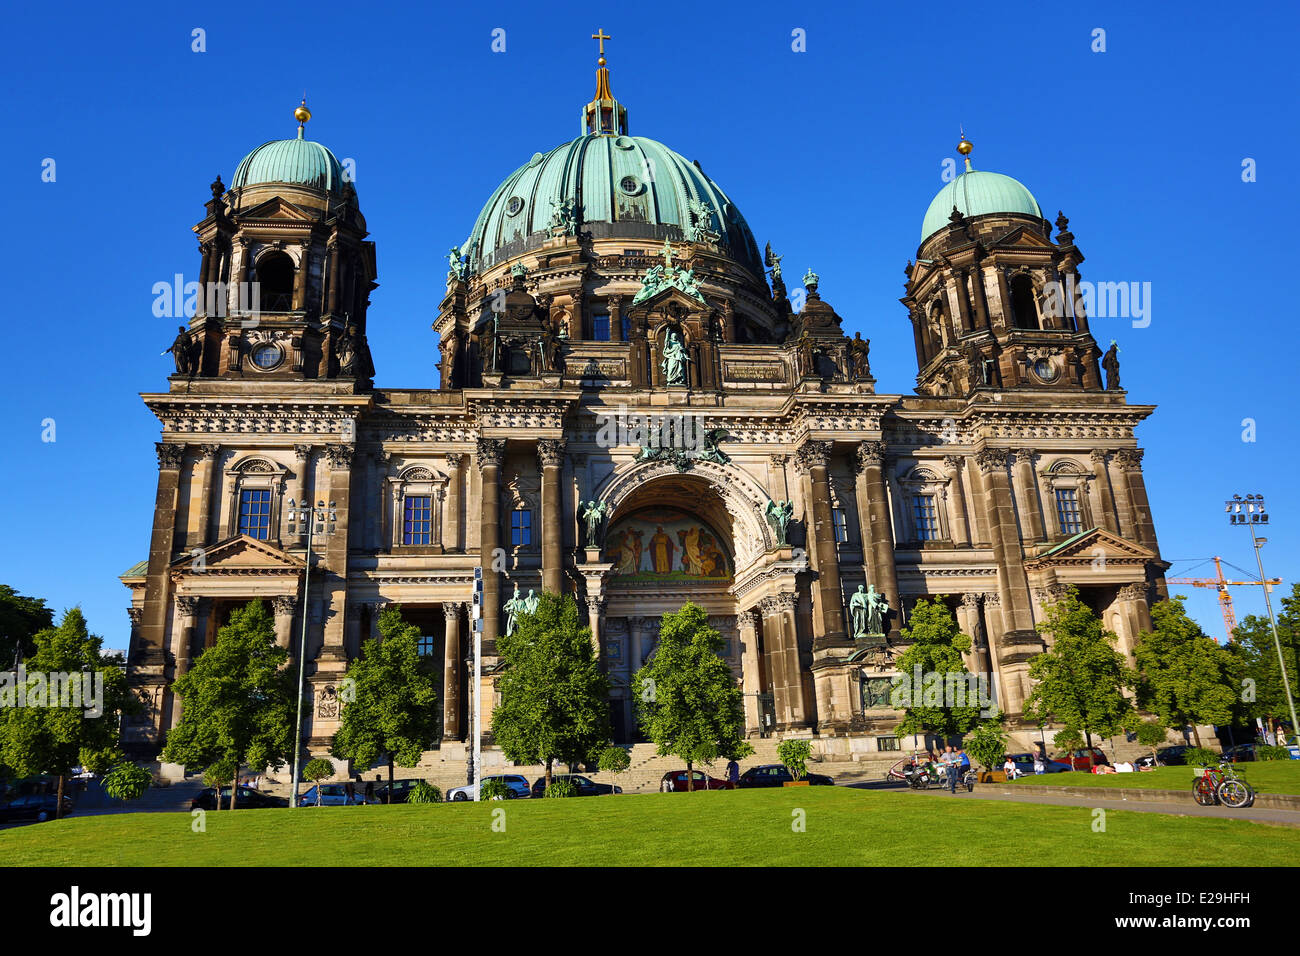 Berlin Cathedral, the Berliner Dom in Berlin, Germany - Stock Image